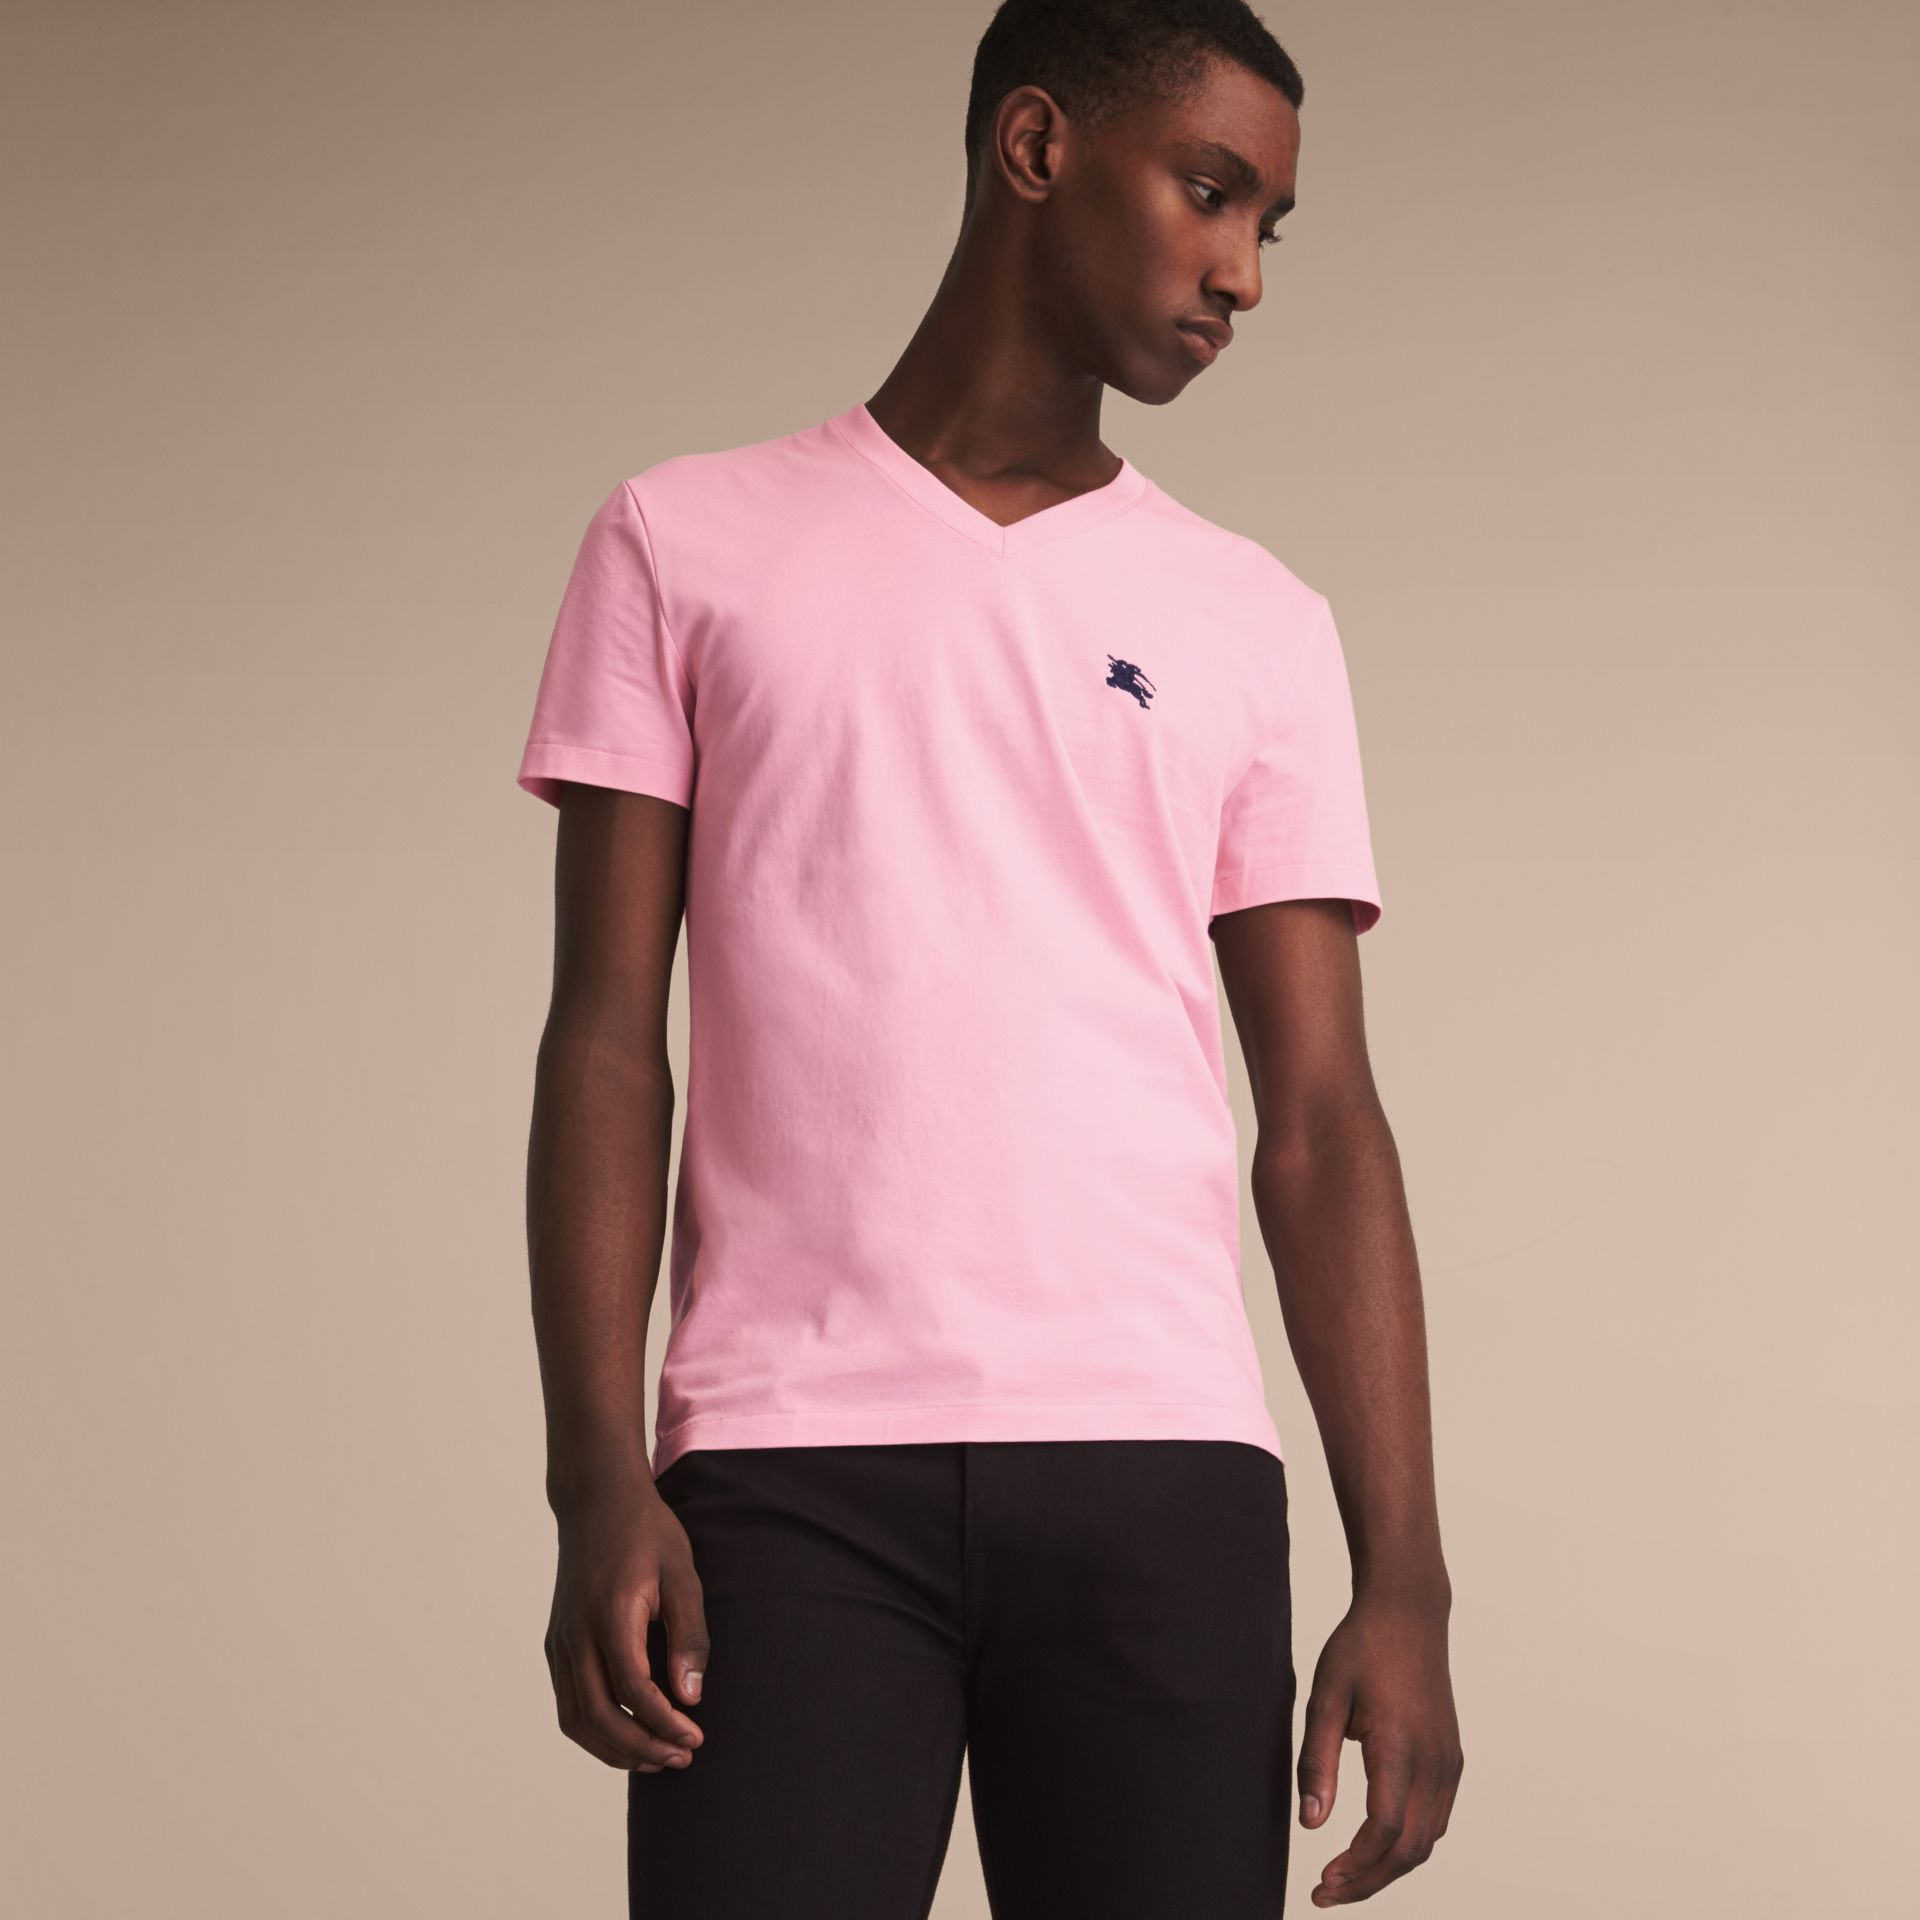 Cotton V-neck T-shirt in Light Pink - Men | Burberry - gallery image 6